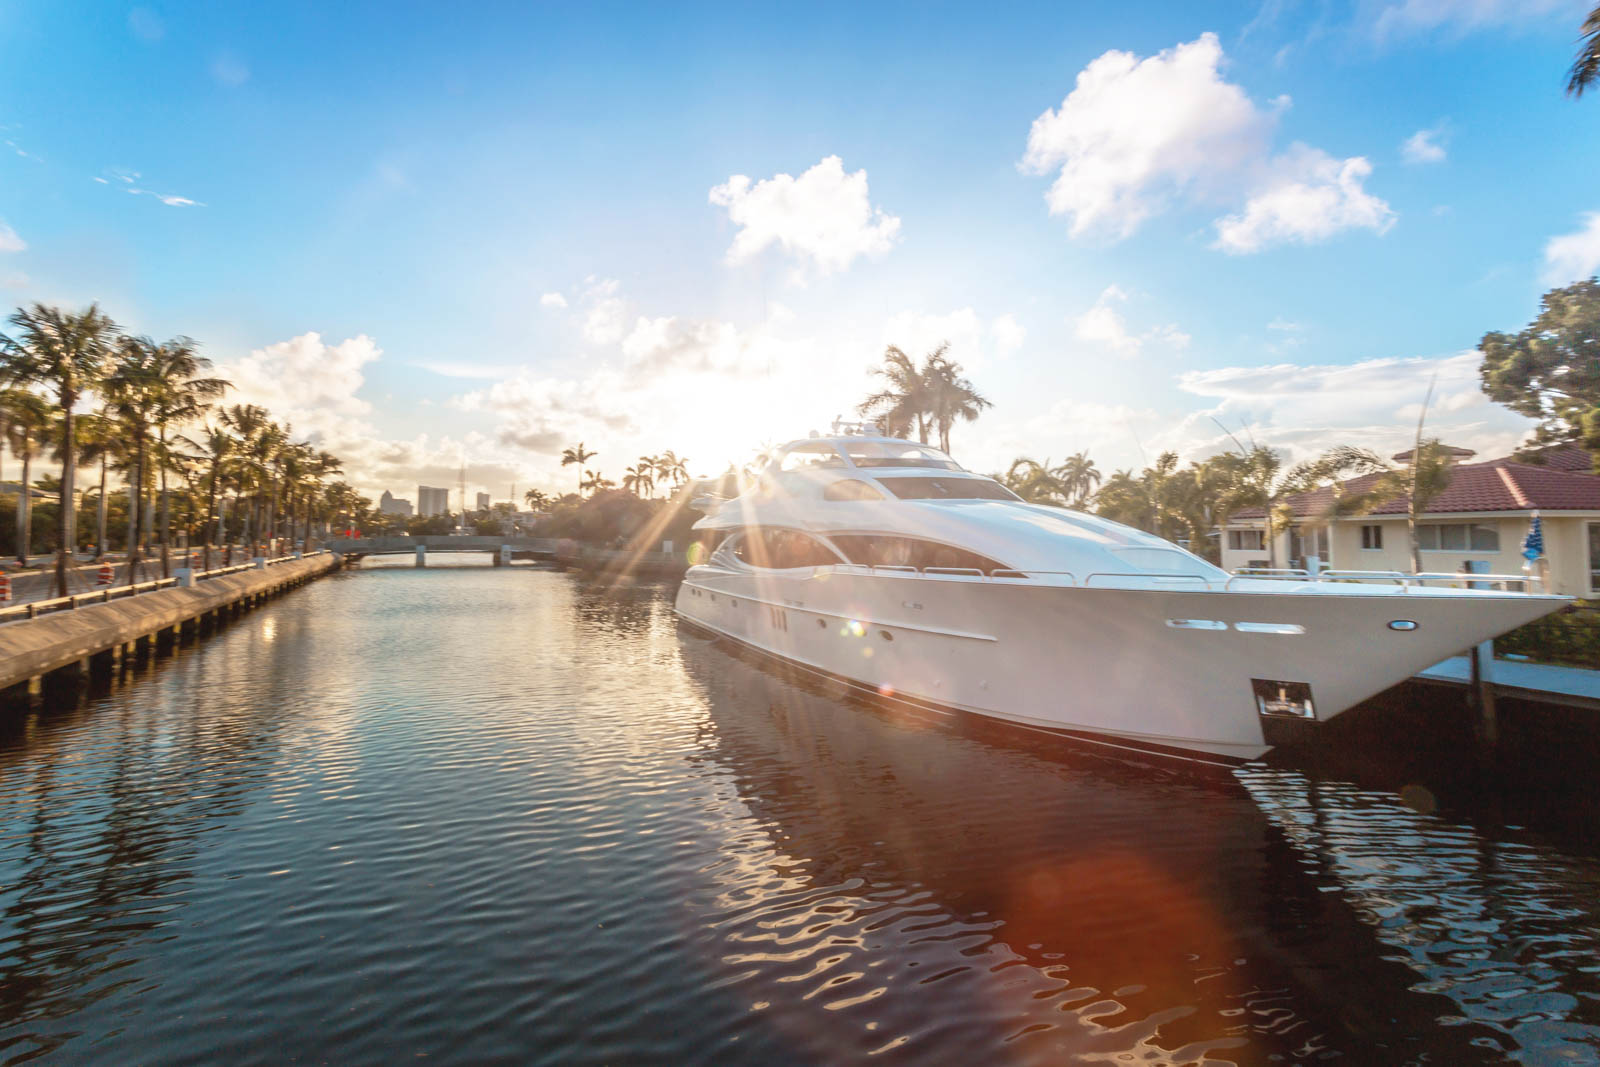 A stroll along the Fort Lauderdale canals at sunset is among the best cheap things to do in Florida. There are other fun things to do in Florida around the south of the peninsula too.